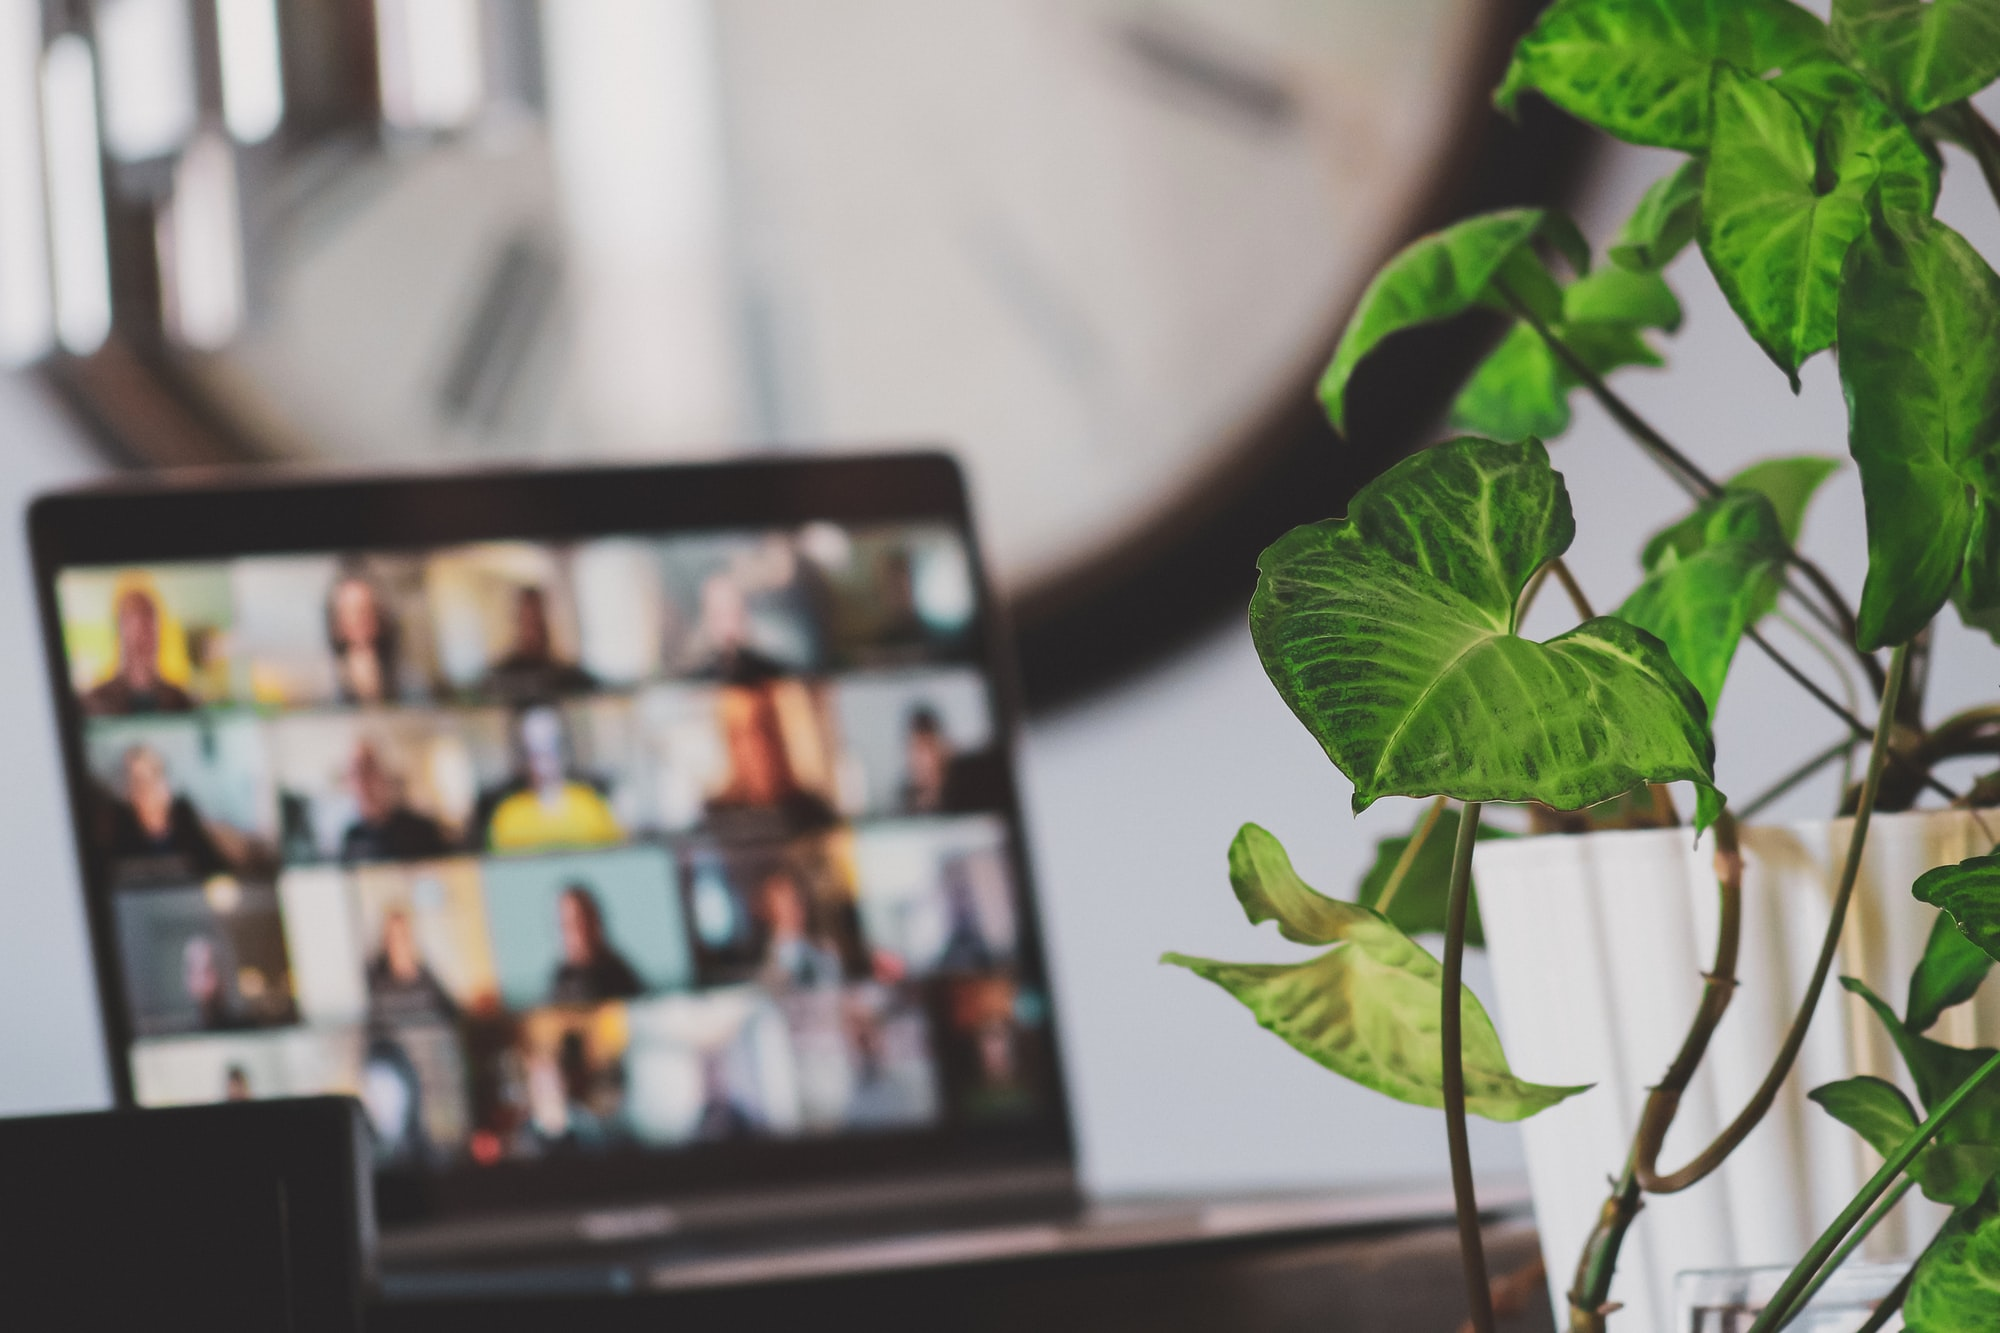 Your work environment: How to use feng shui to promote productivity and healthy relationships